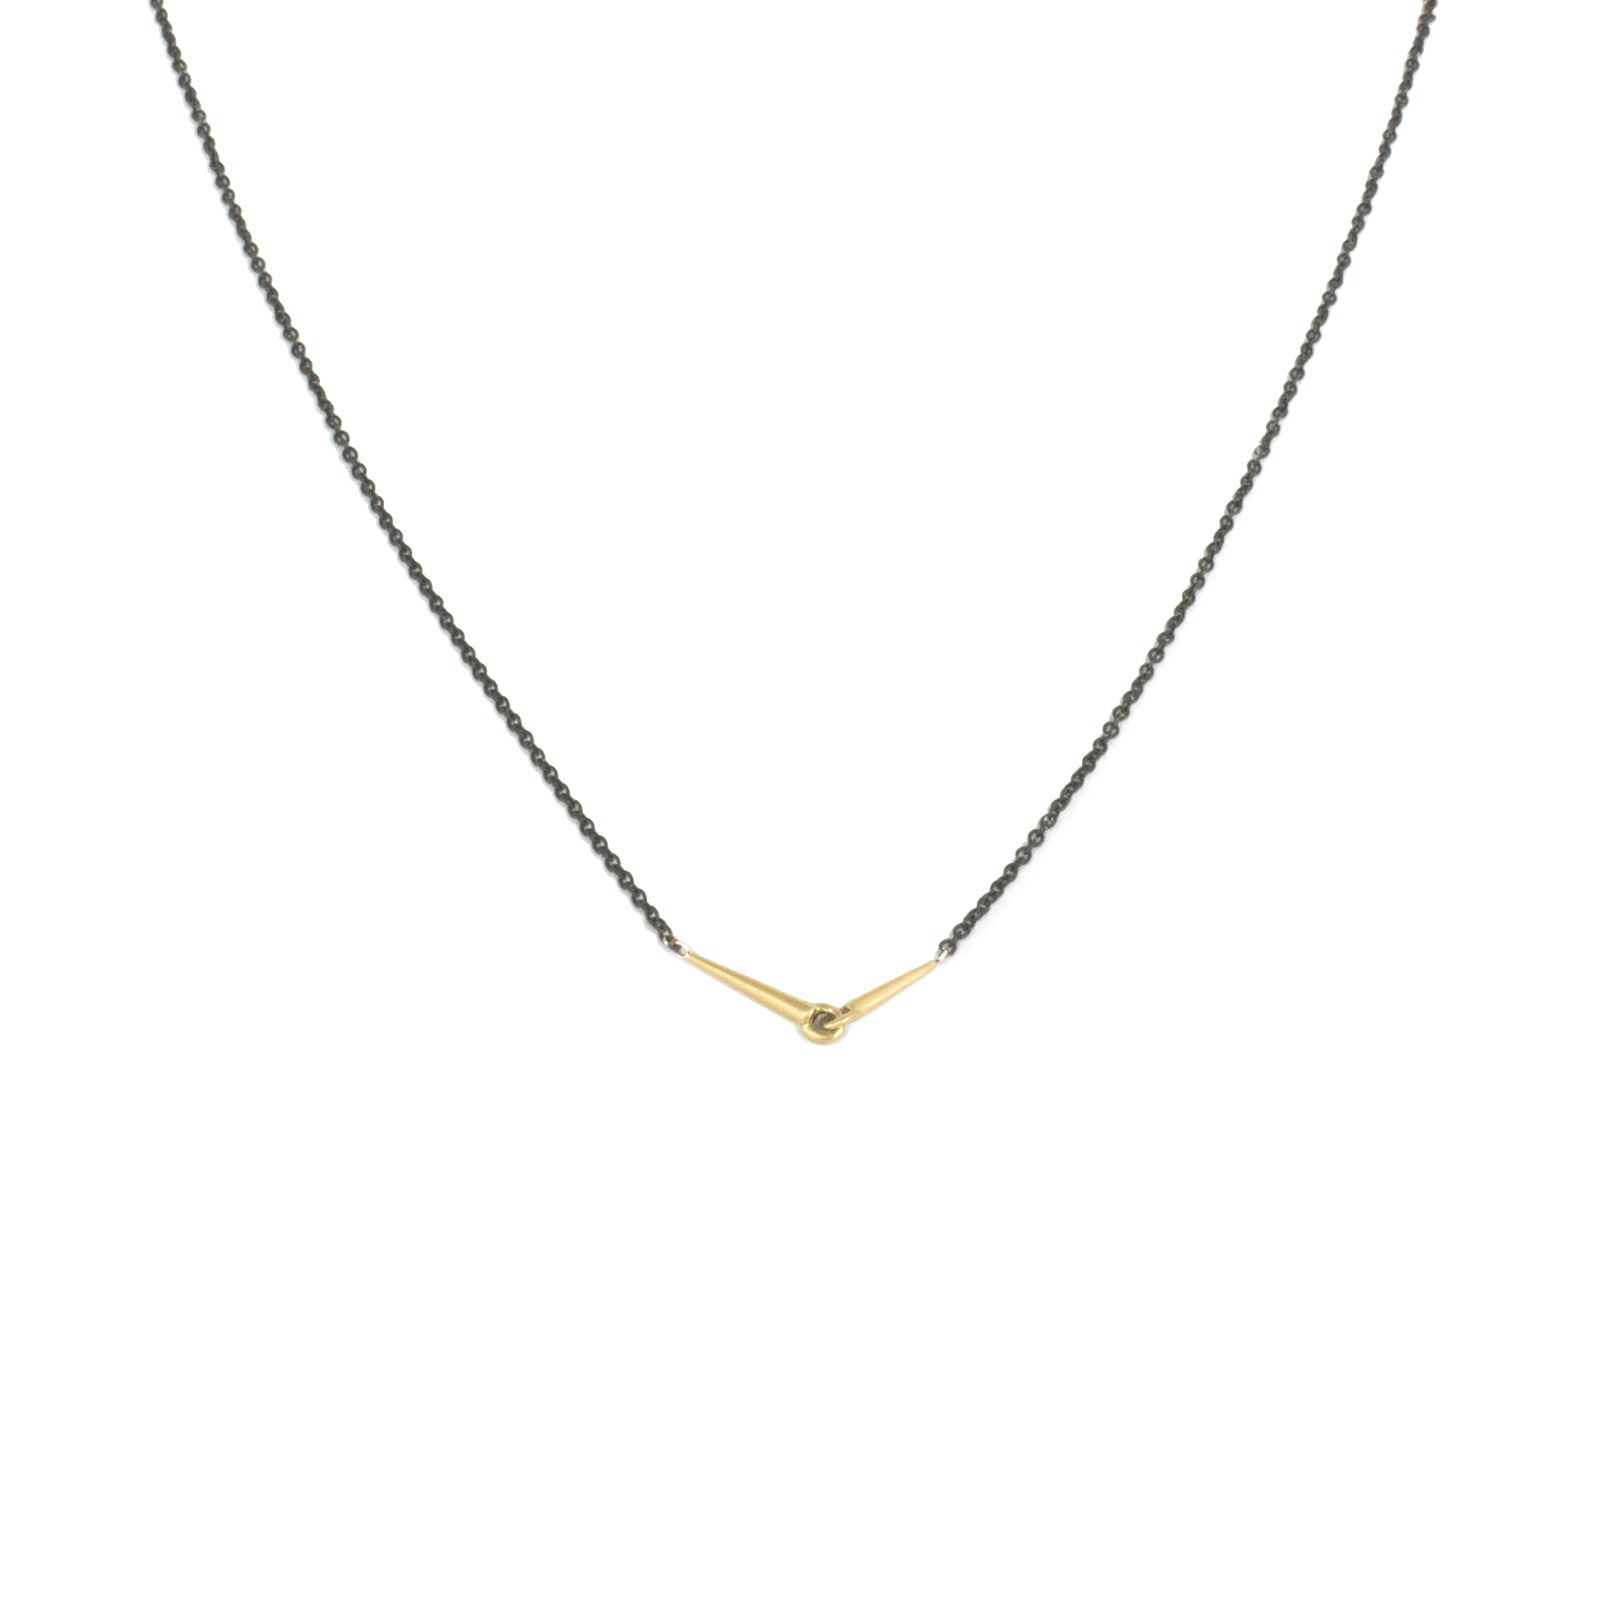 18k yellow gold with oxidized silver chain / small mirror points necklace